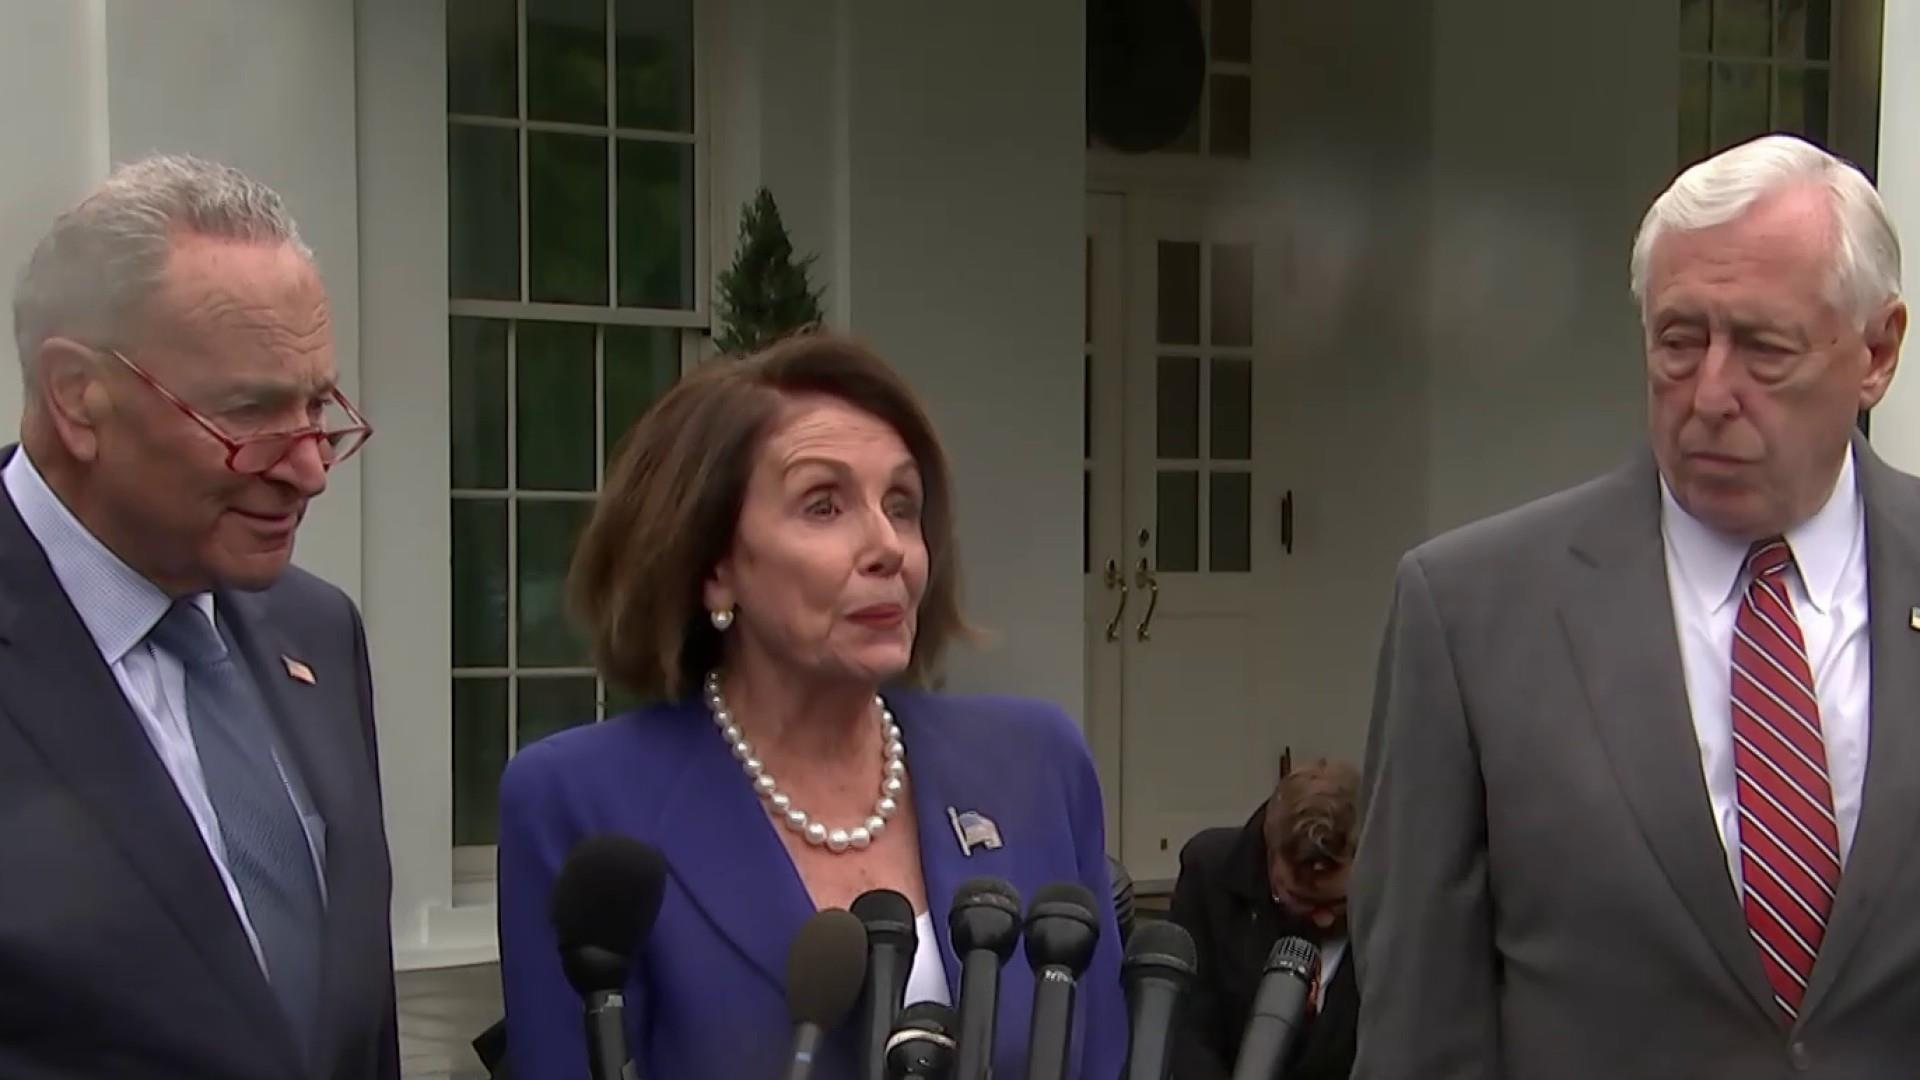 Democrats angrily walk out of White House meeting after Trump 'meltdown'